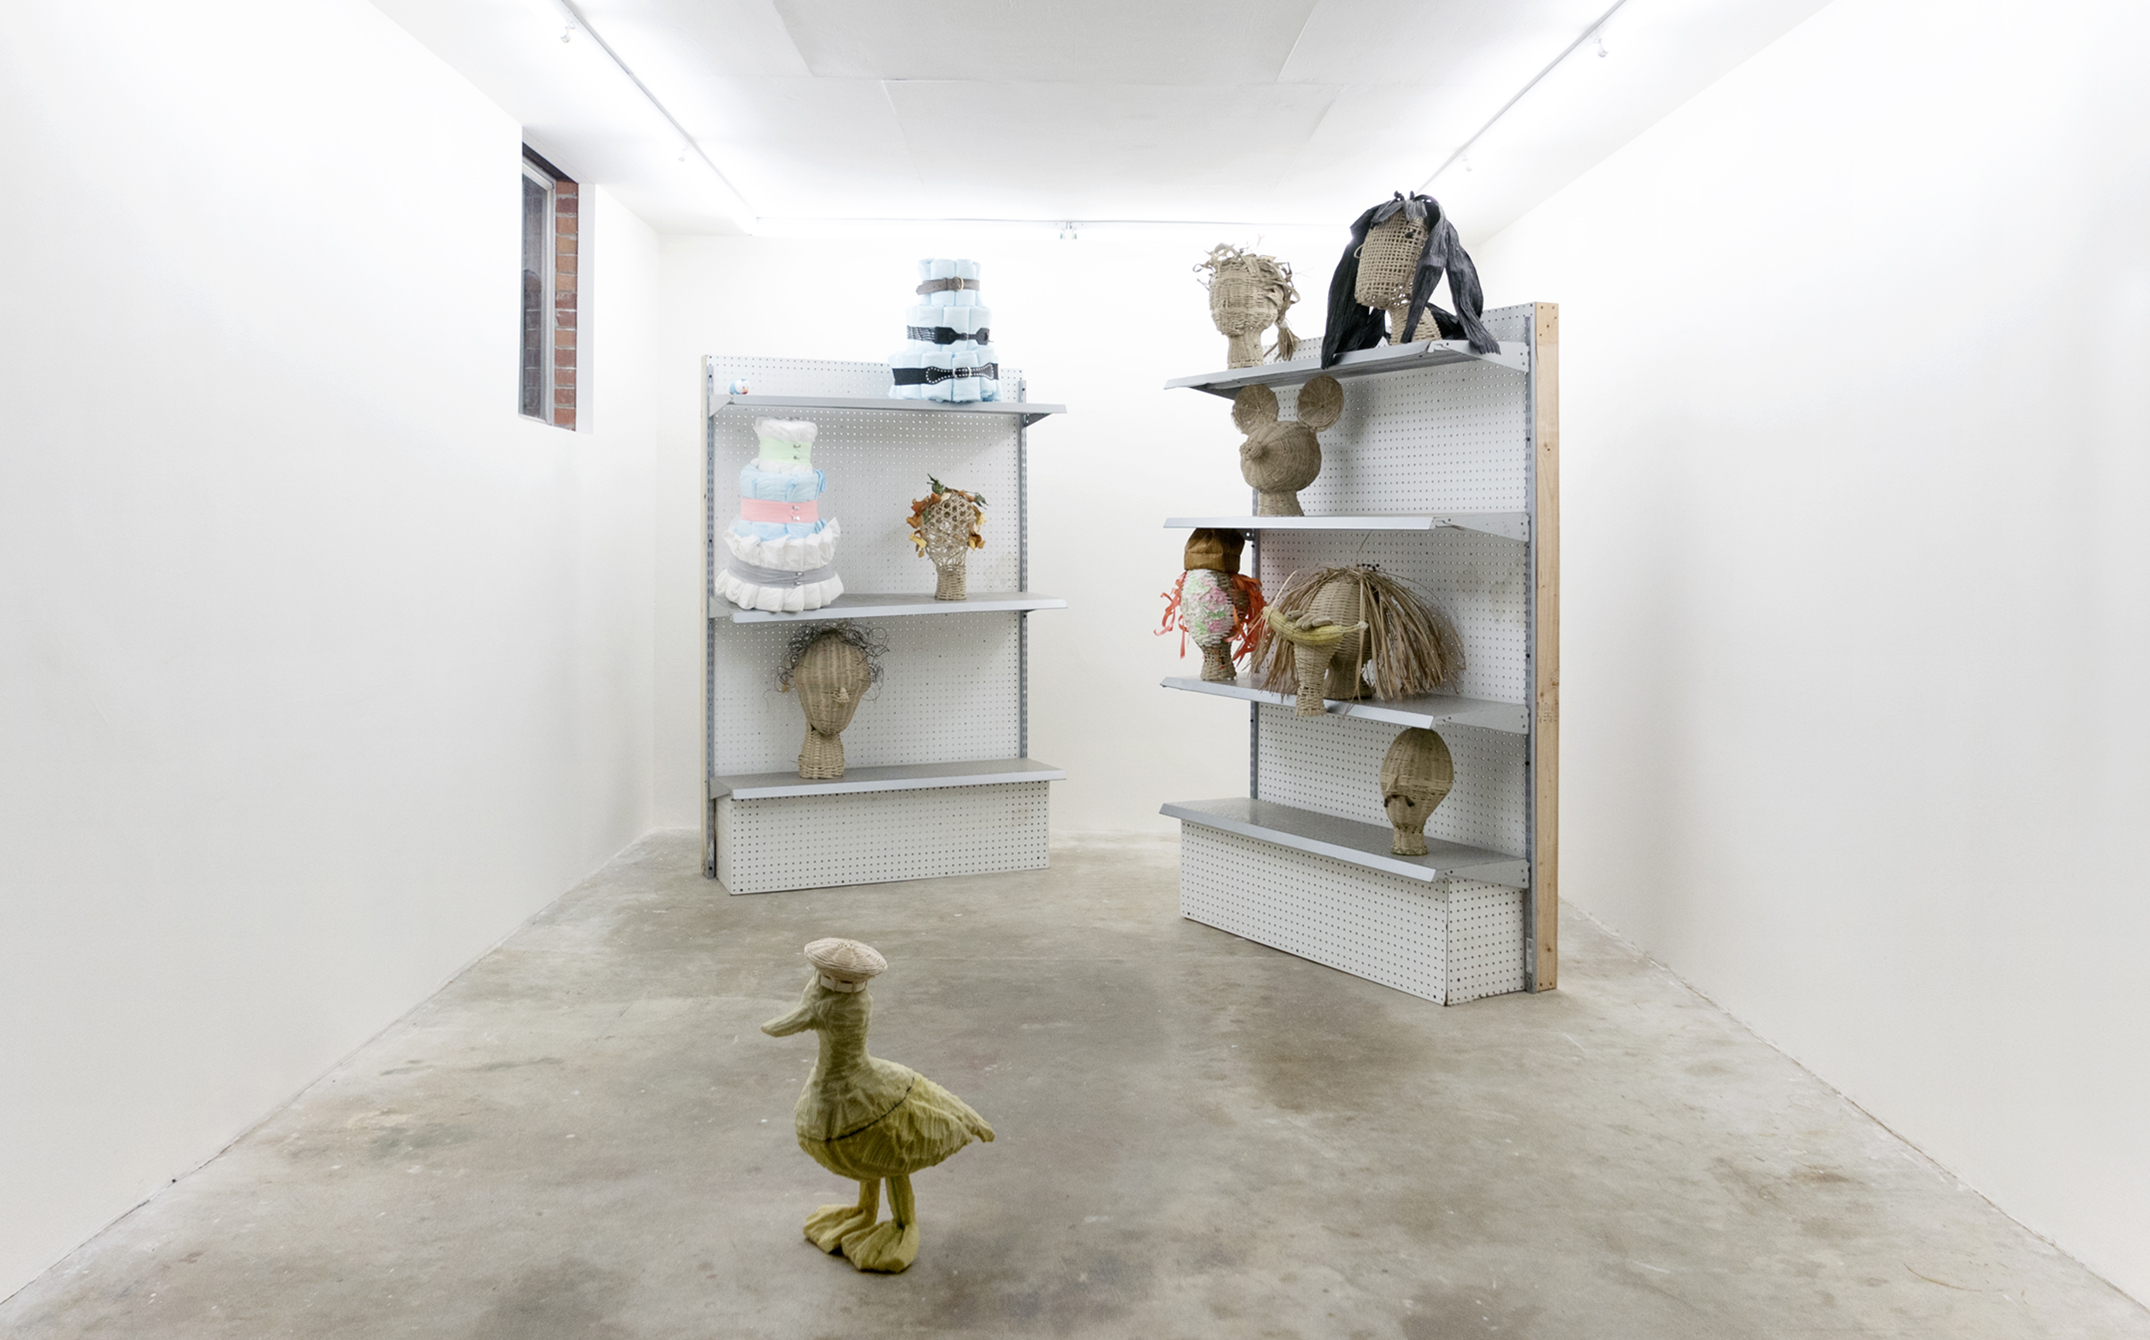 """Installation view of Dylan Spaysky's """"Wicker and Diapers"""" (2017), a solo exhibition at Good Weather in North Little Rock, AR"""